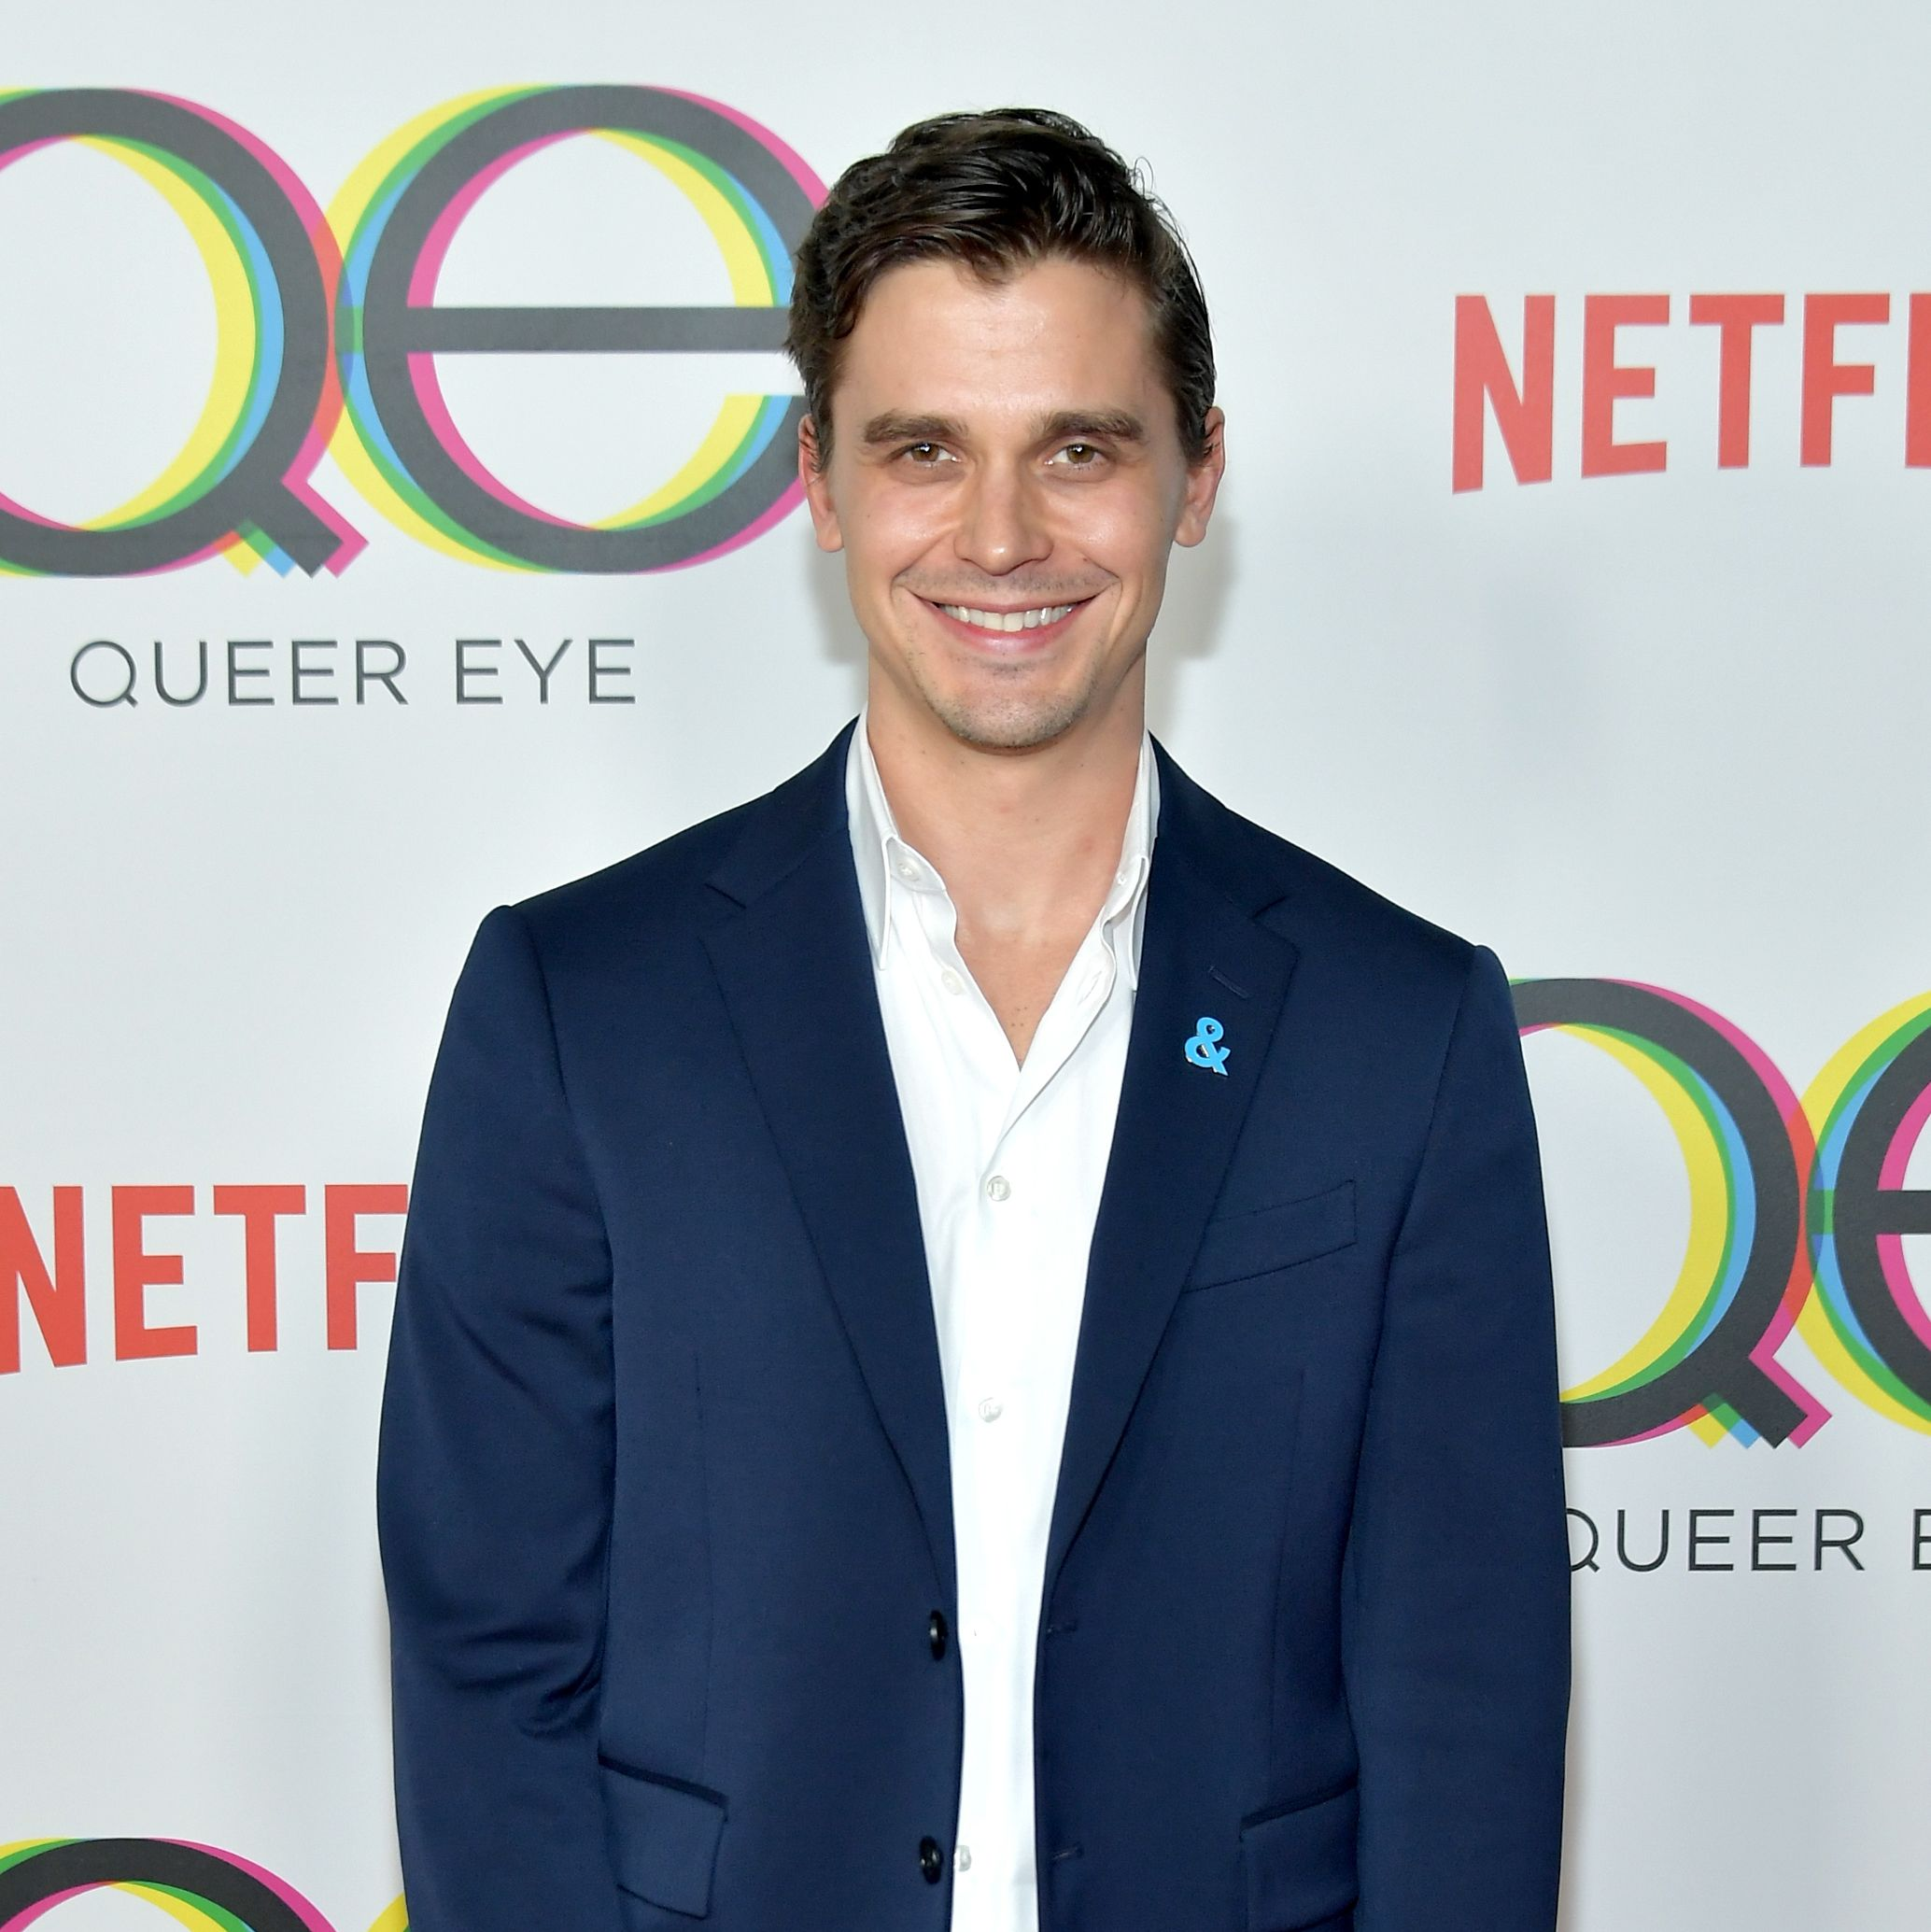 Antoni from 'Queer Eye' Just Explained What Actually Happened During That Kate Beckinsale, Pete Davidson Make-Out